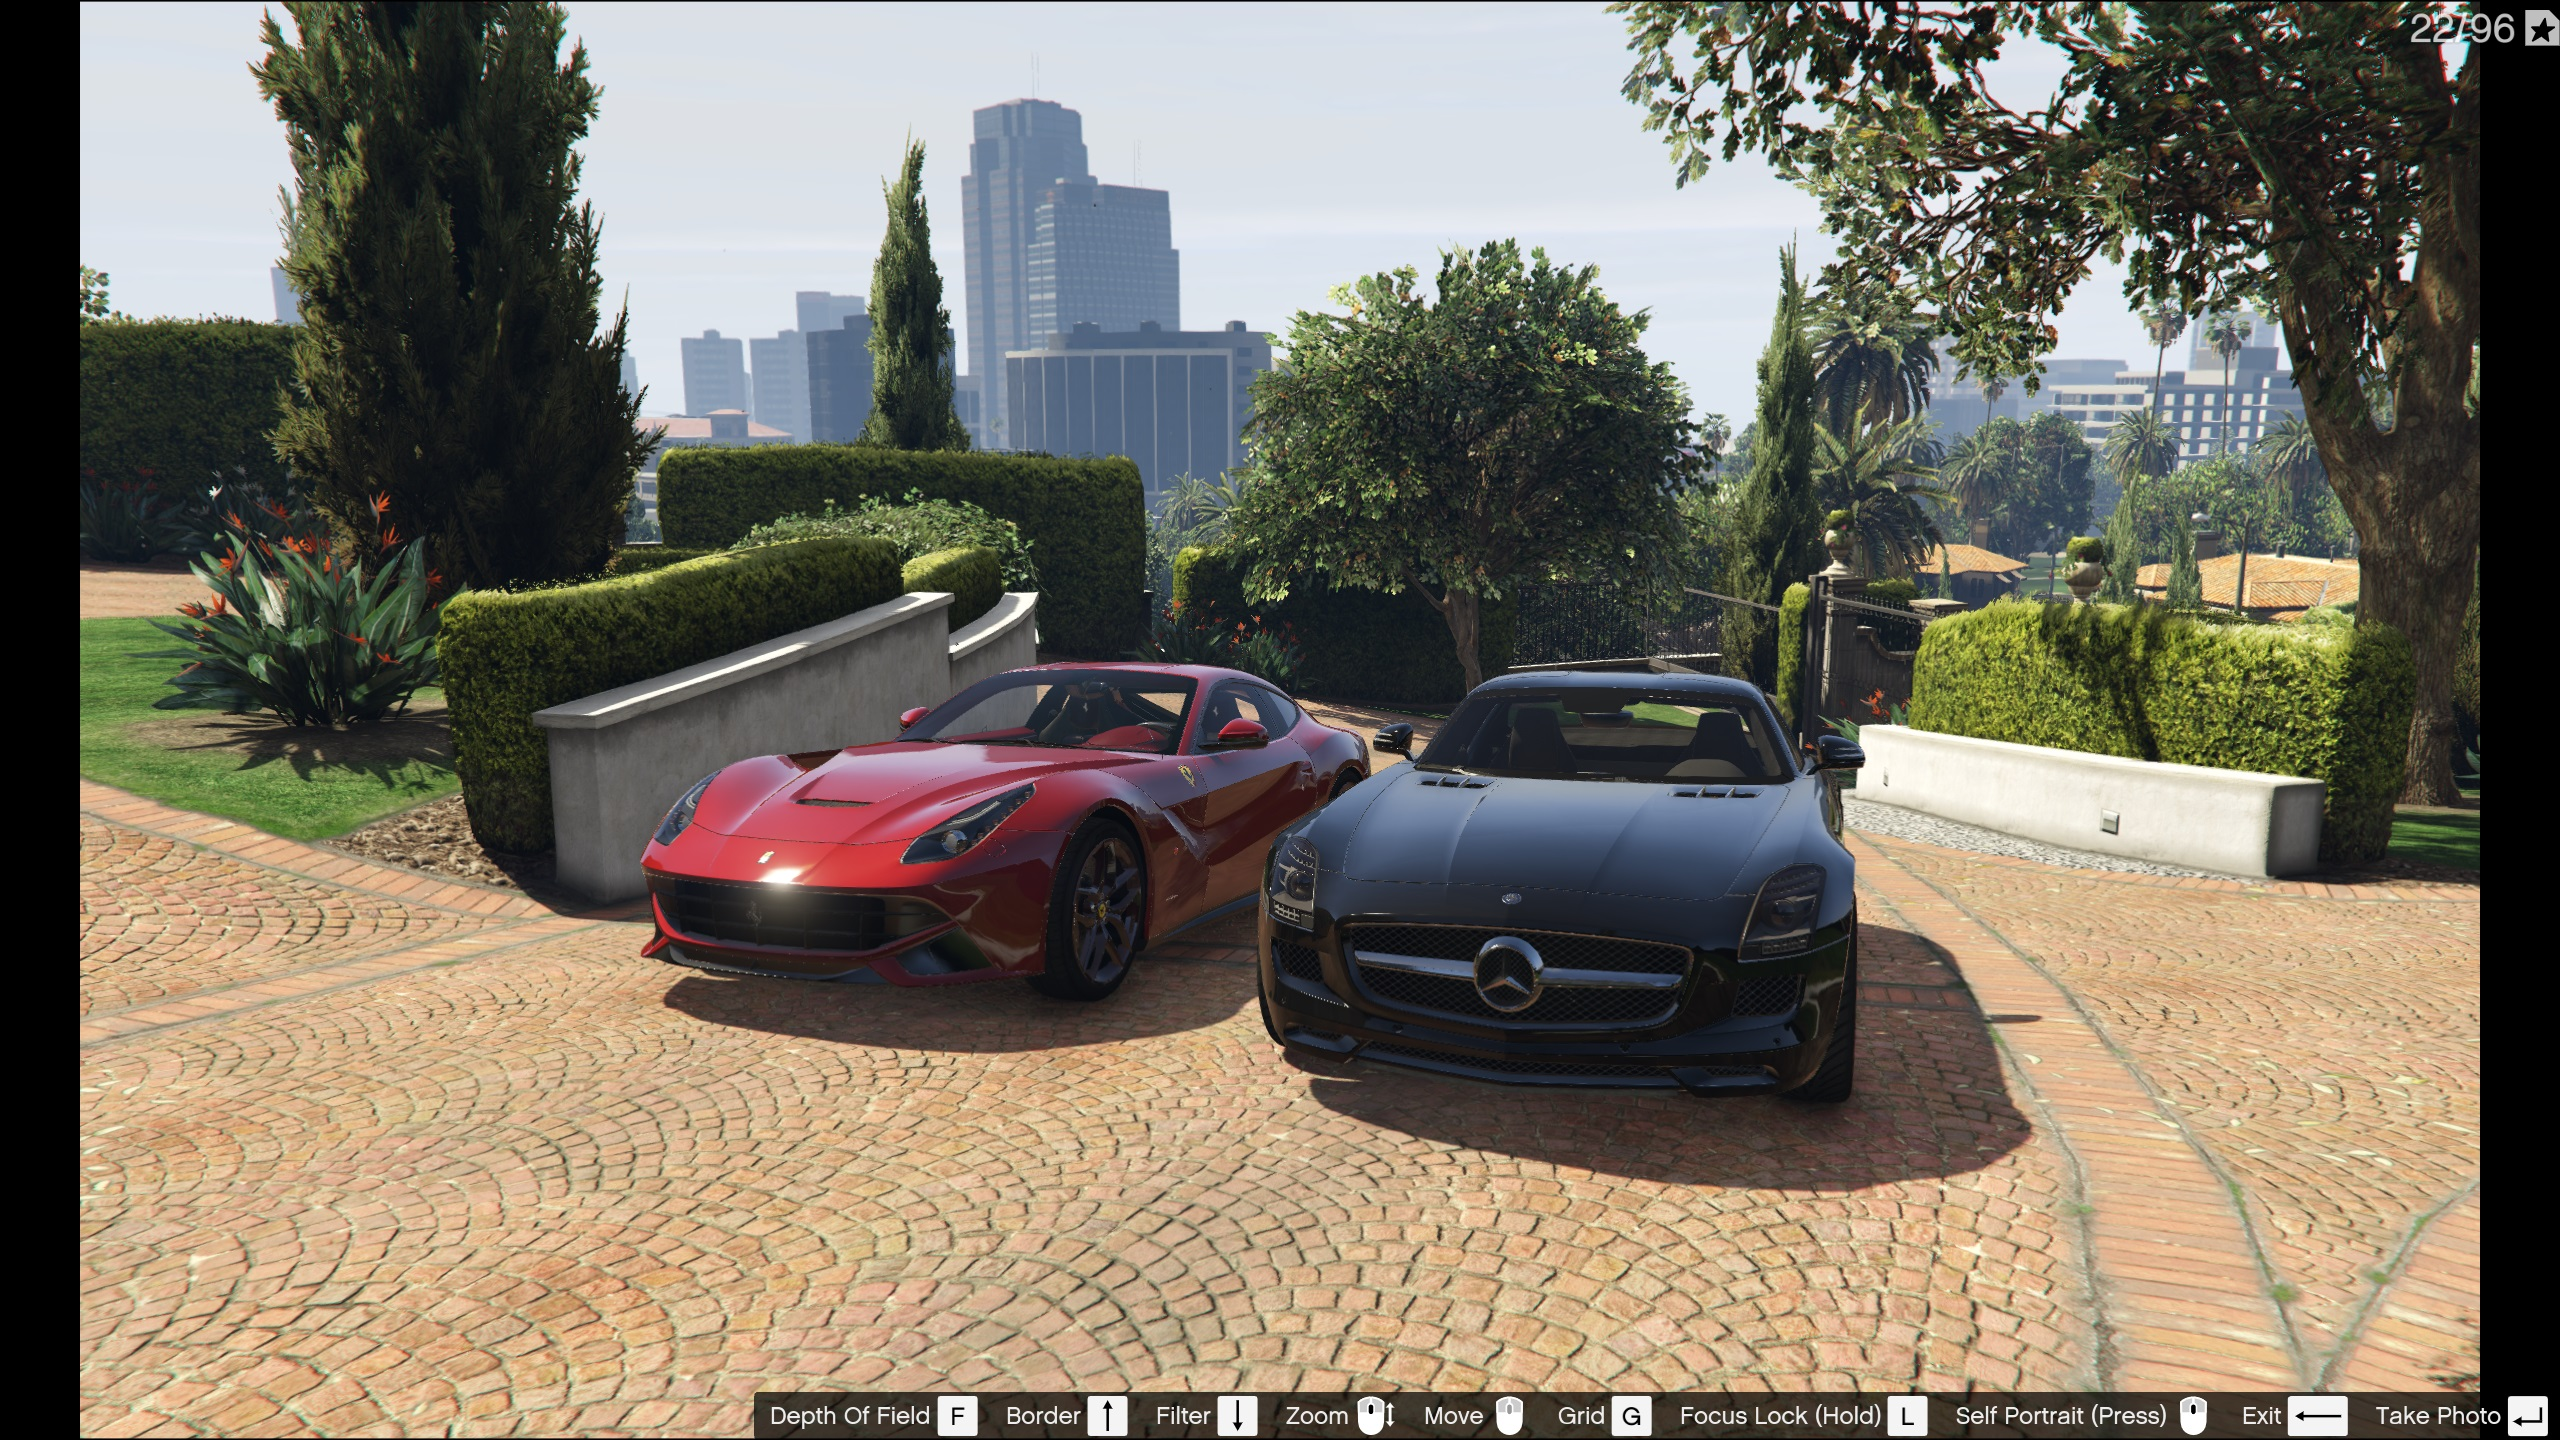 Image 5 - Real Cars 4 GTA 5 mod for Grand Theft Auto V ...